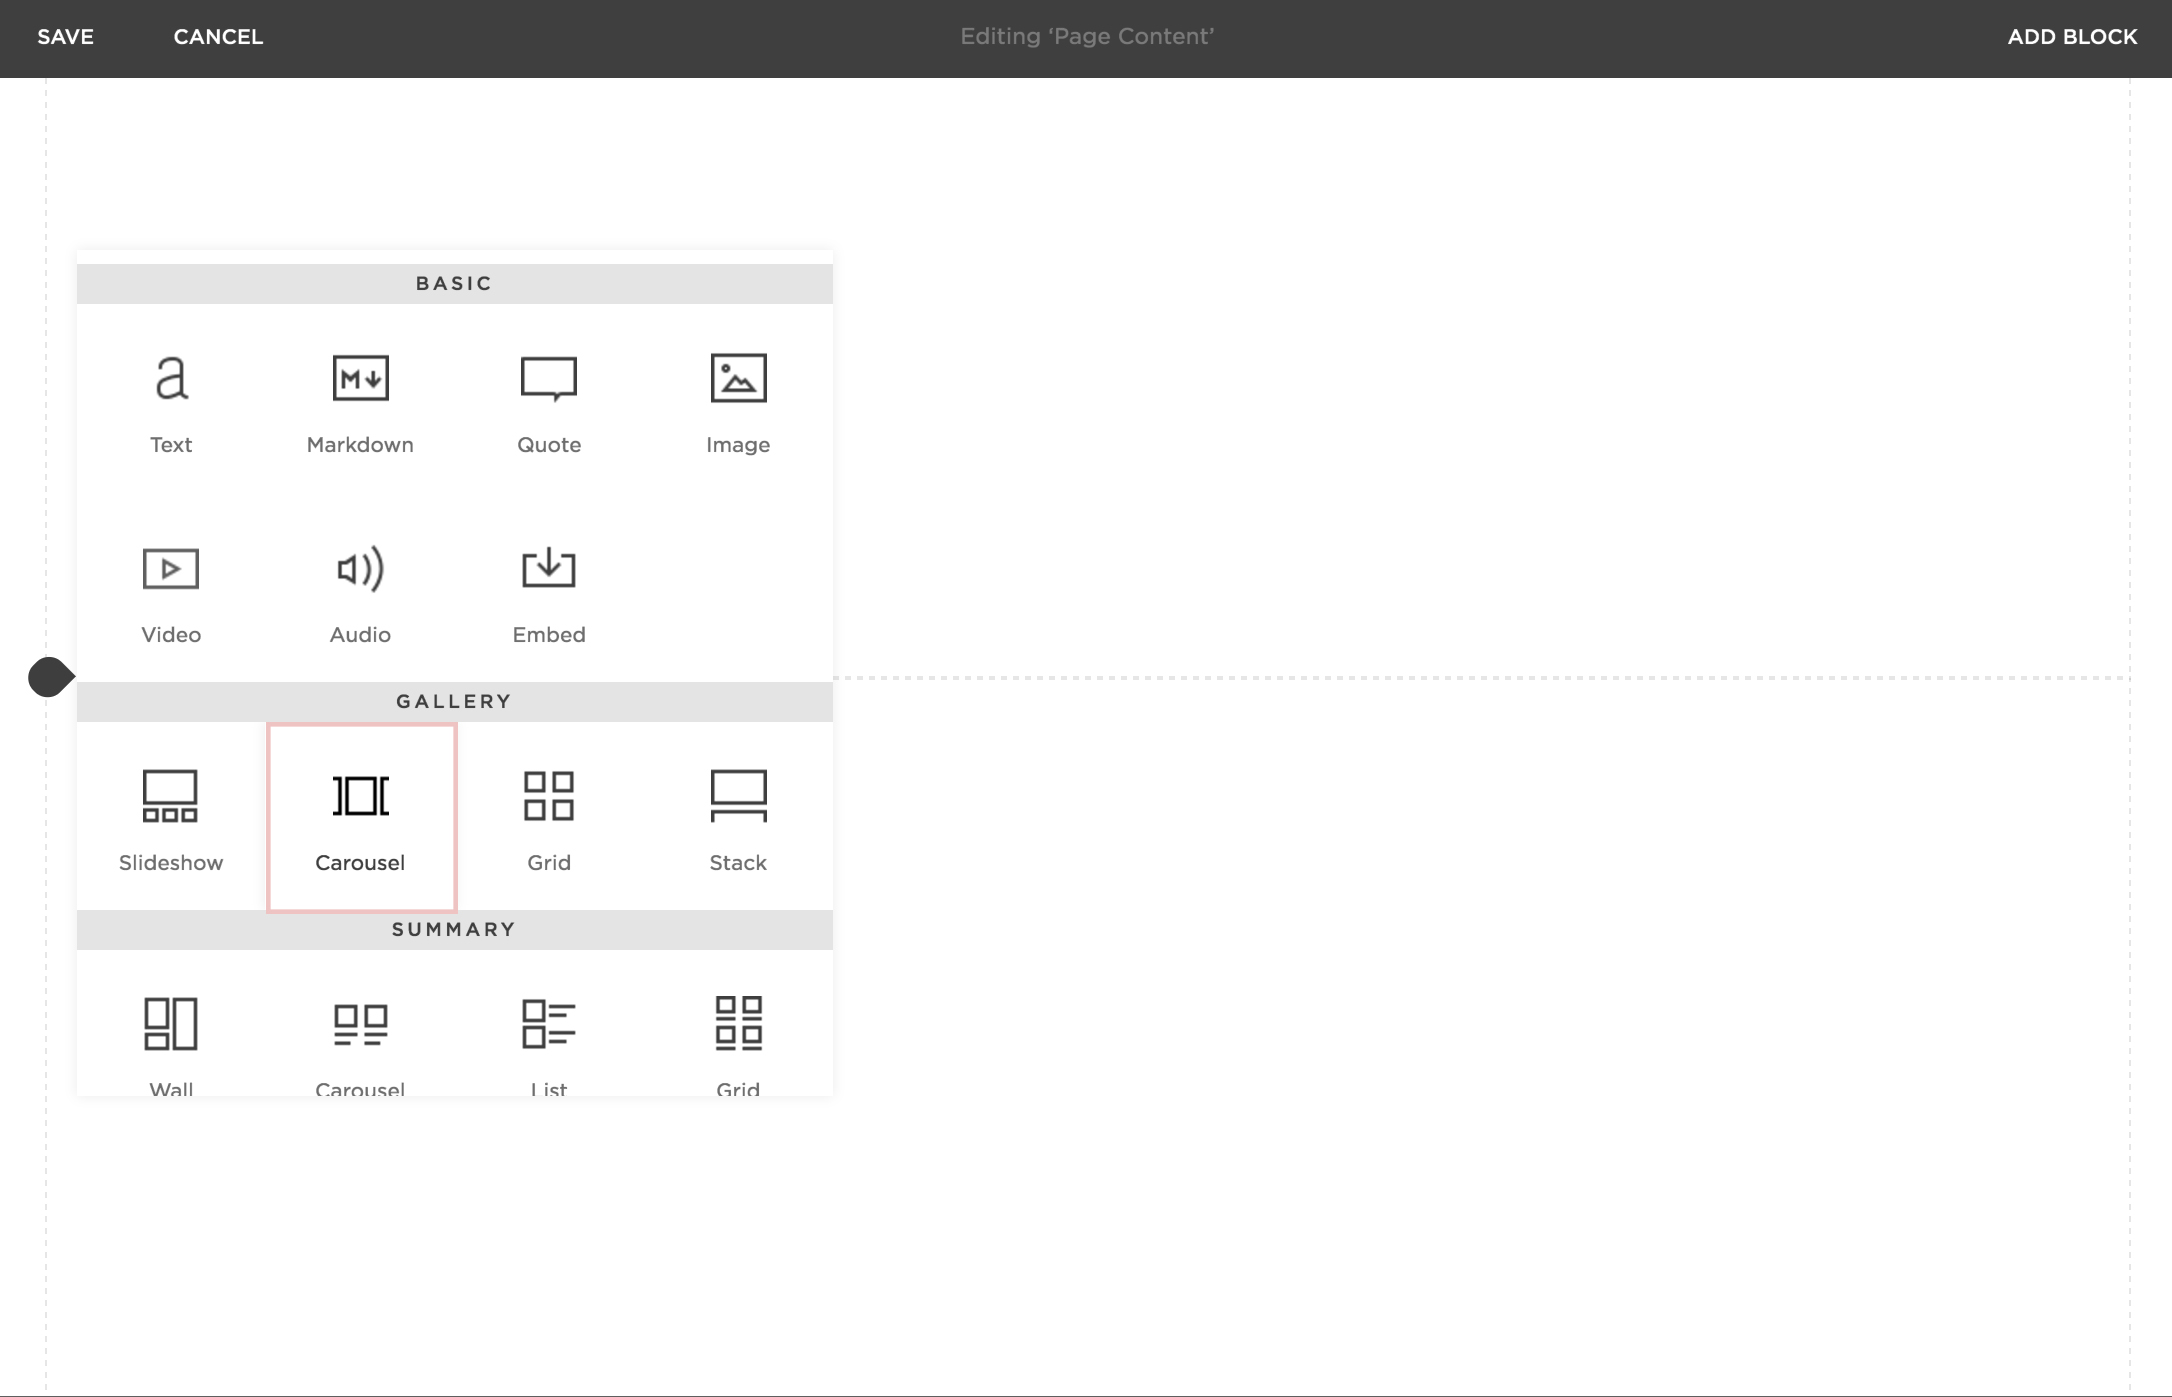 HOW-TO-CREATE-MULTIPLE-LINKS-ON-A-SINGLE-IMAGE-WITH-SQUARESPACE-cara.jpg